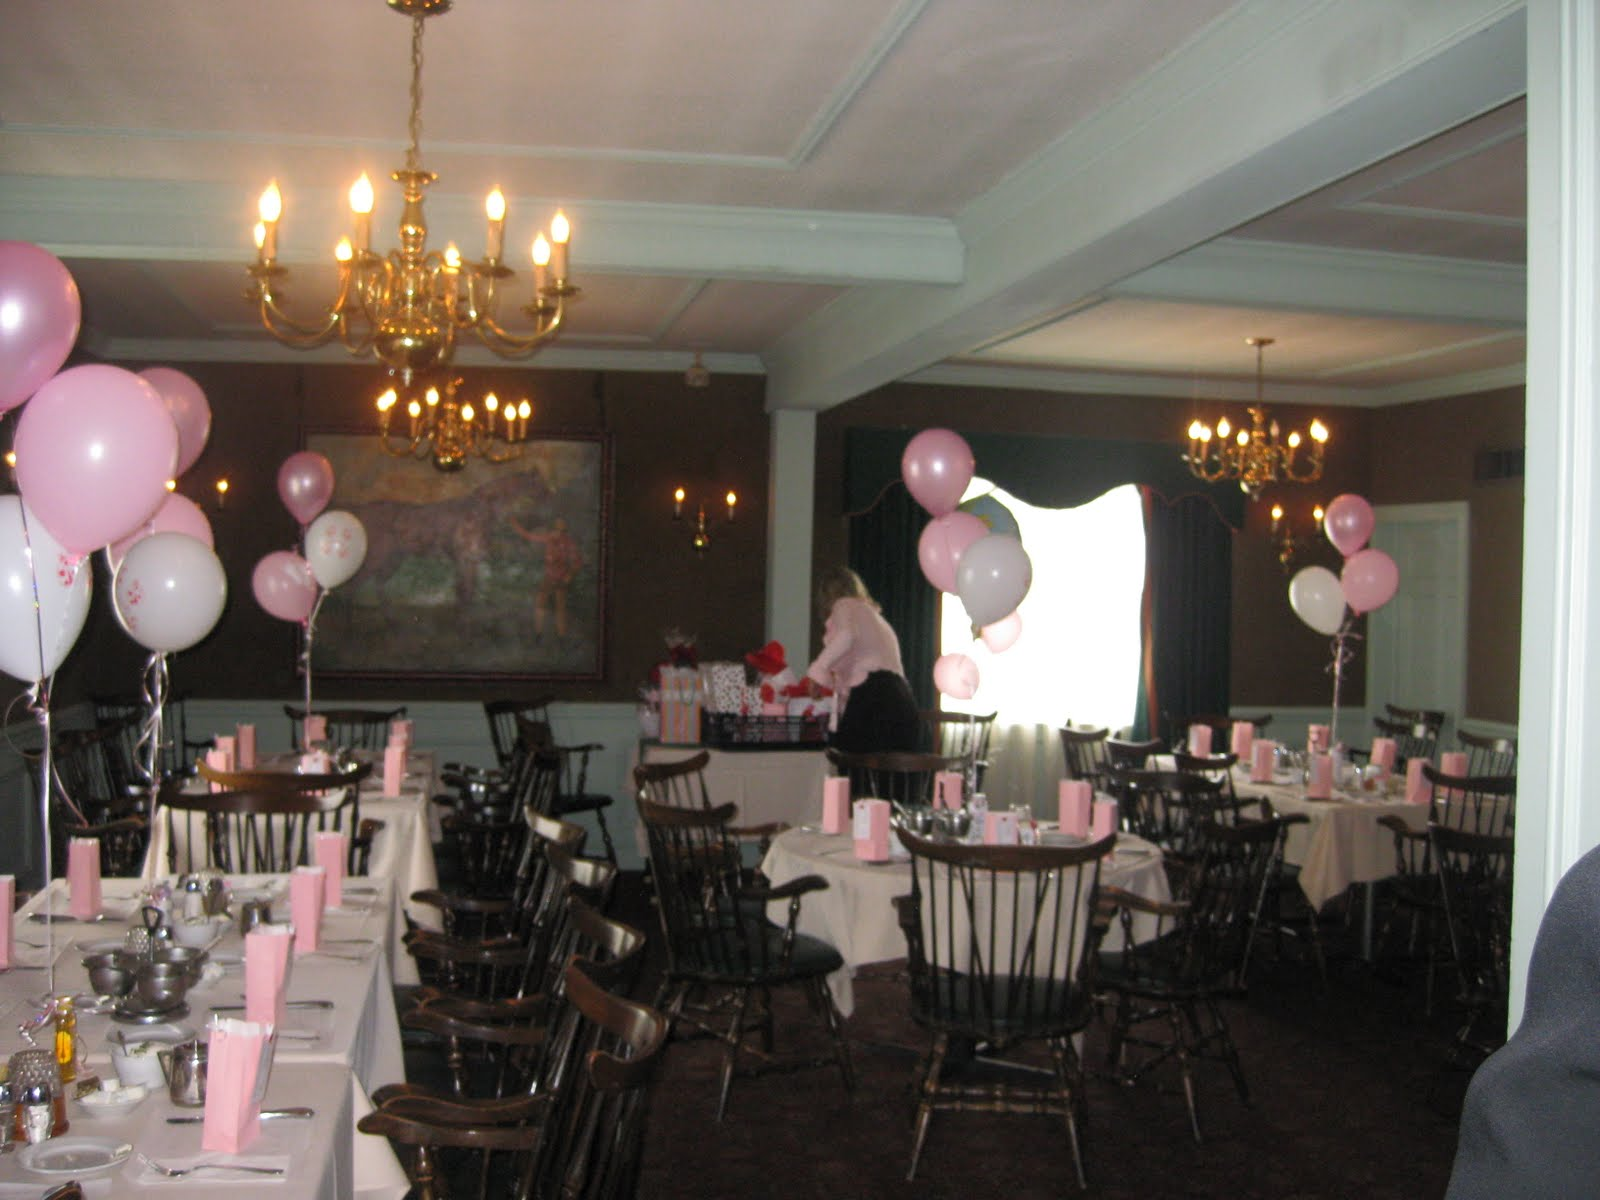 Baby Shower Food Ideas: Baby Shower Ideas Restaurant